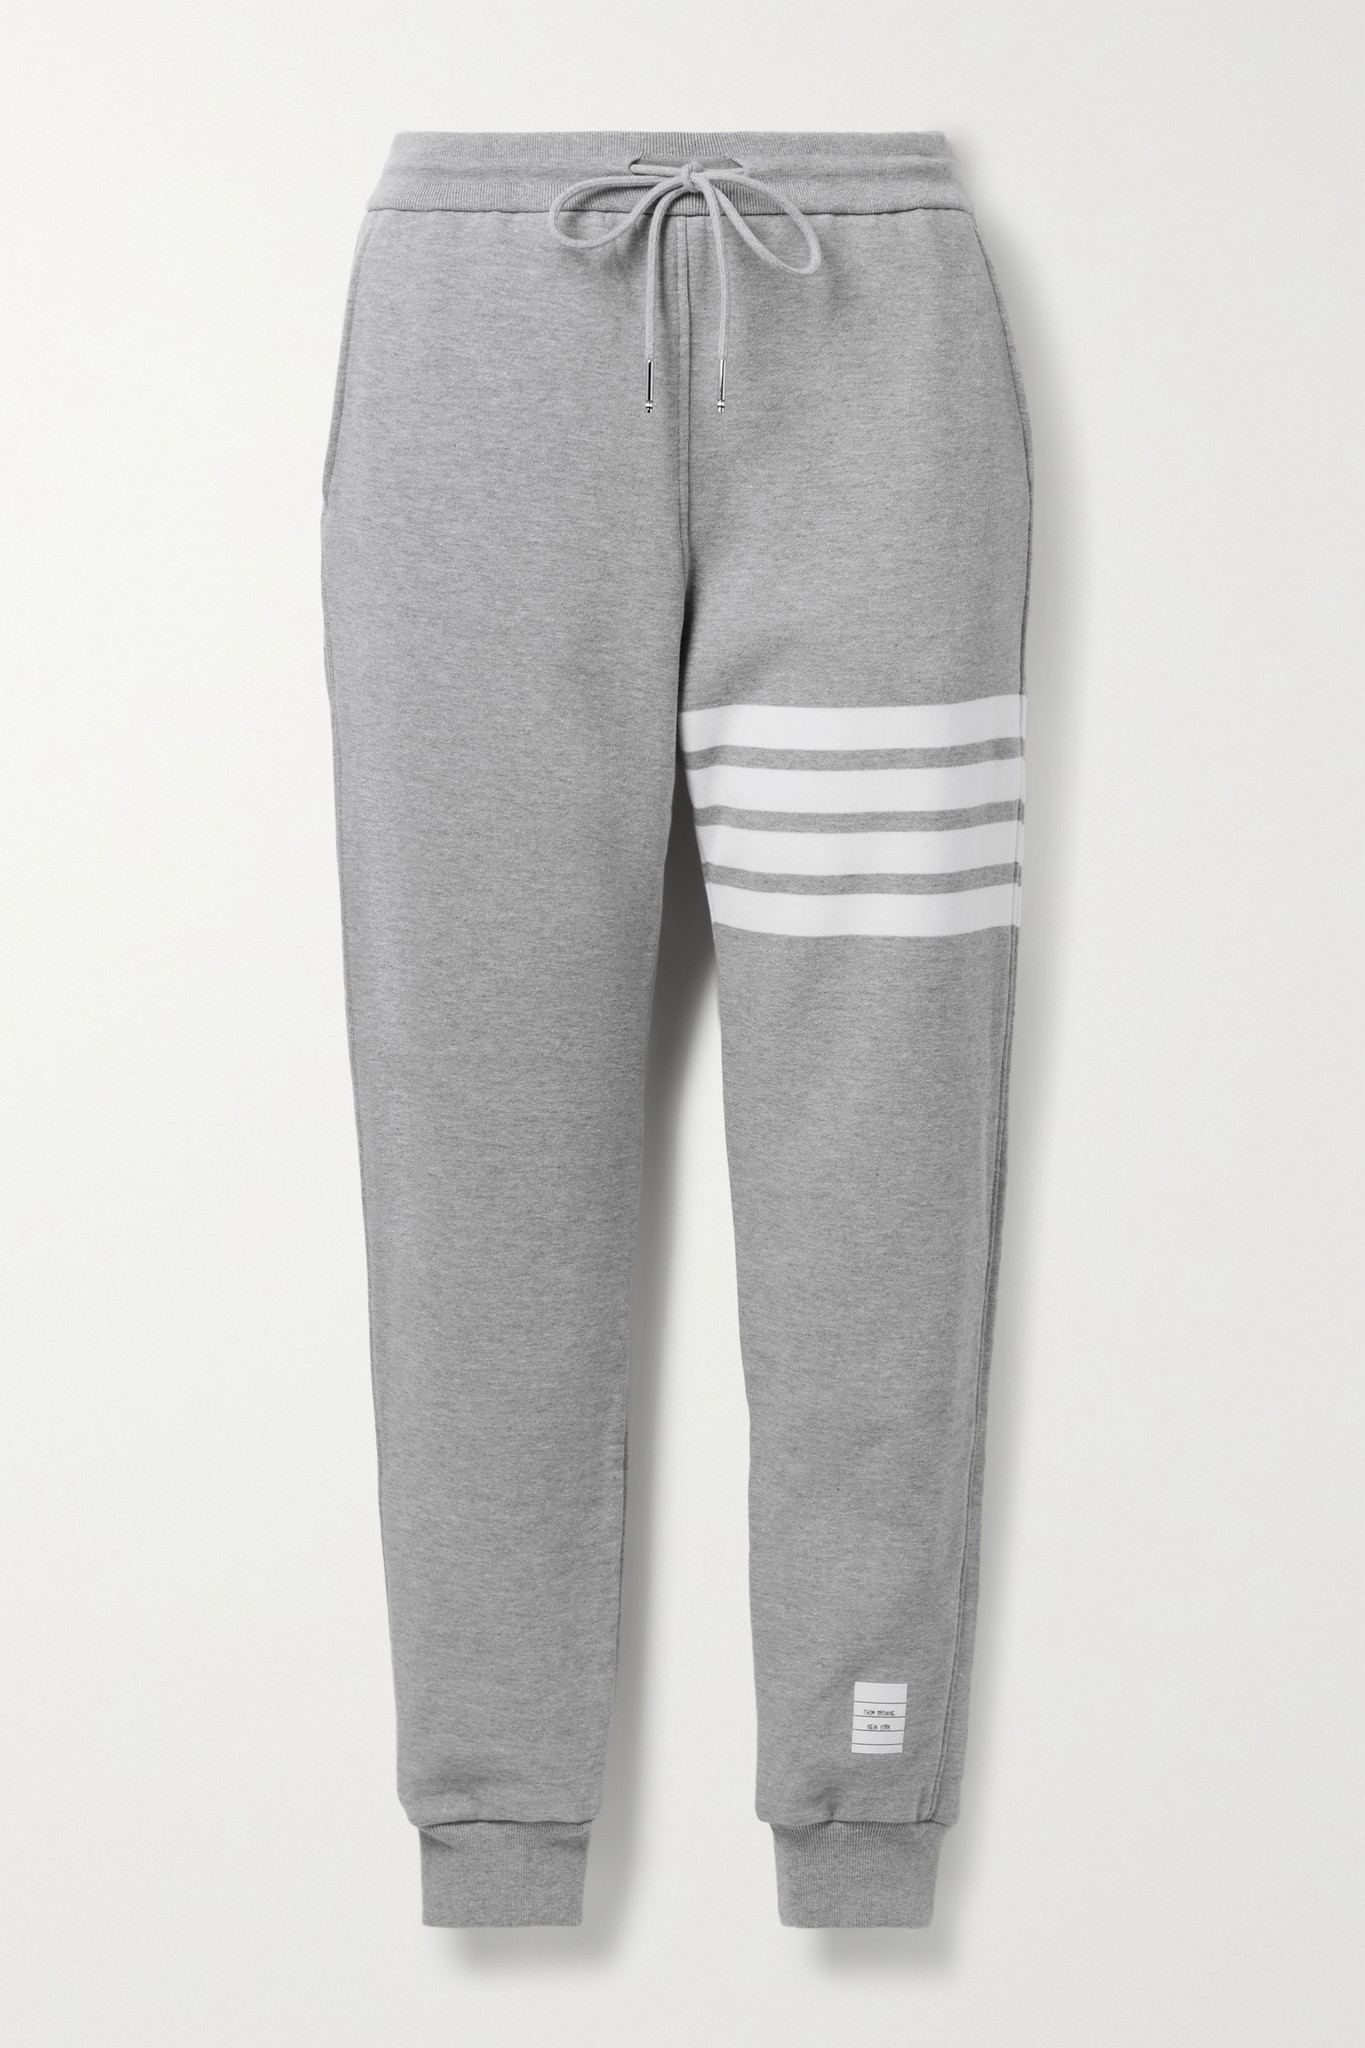 THOM BROWNE - Striped Mélange Cotton-jersey Track Pants - Gray - IT42